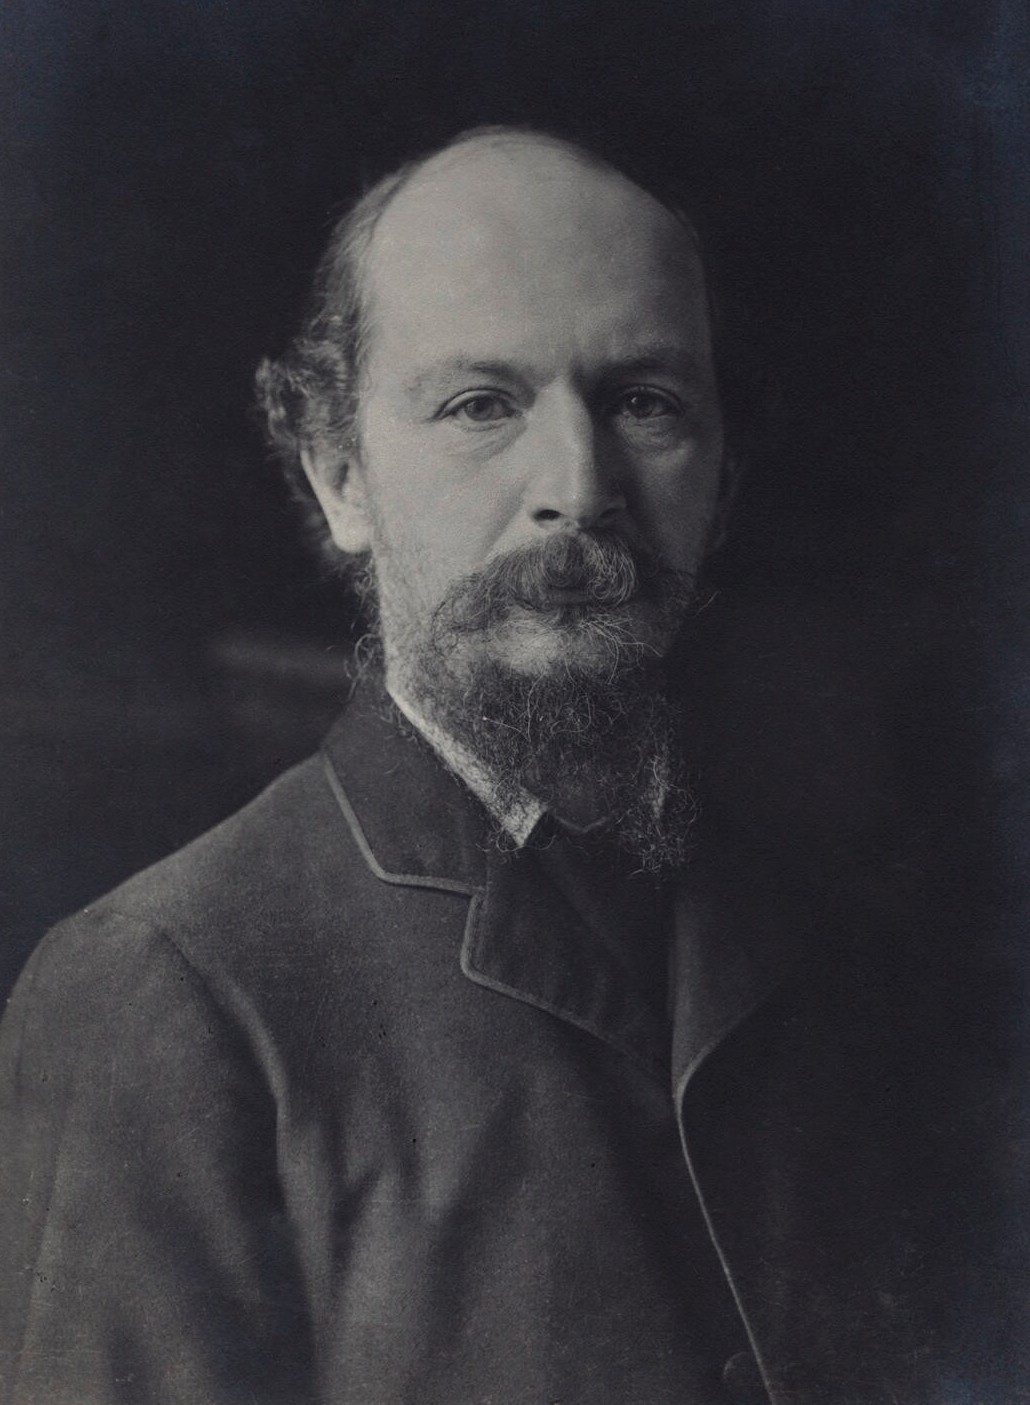 Photo of Algernon Charles Swinburne